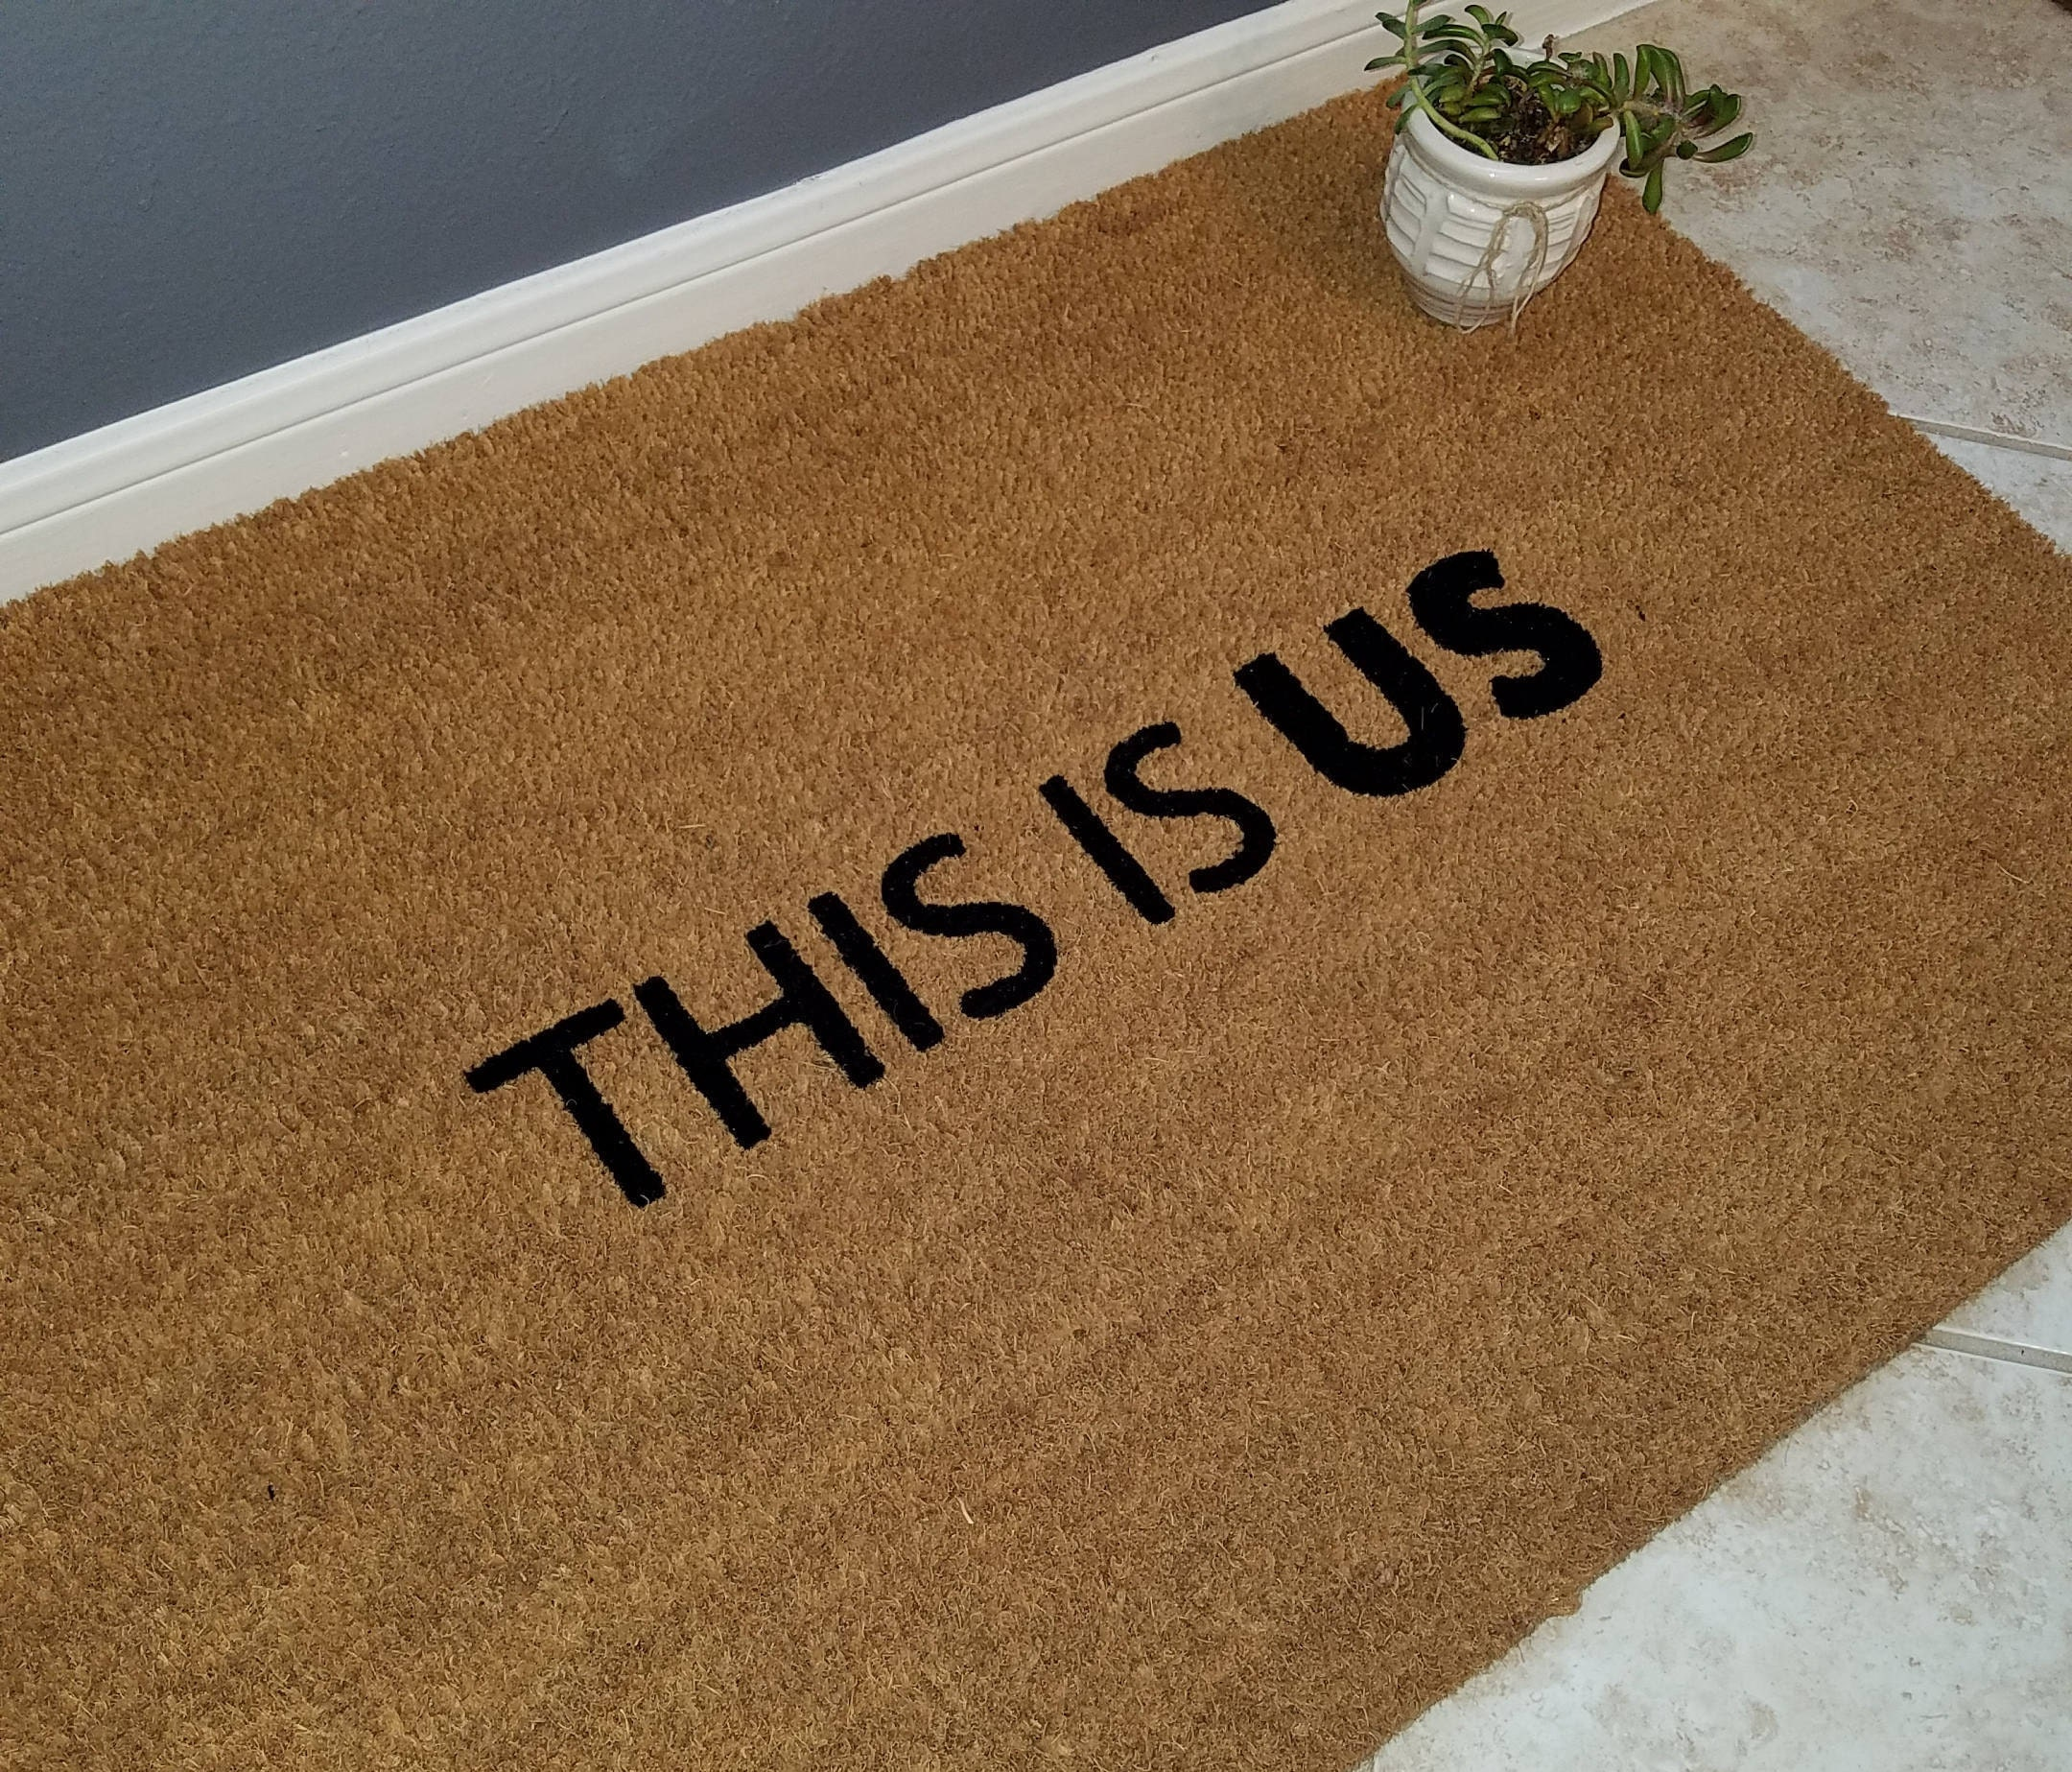 door mats funny like il mat creative fullxfull outdoor welcome a coir housewarming listing cool doormats boss doormat gift